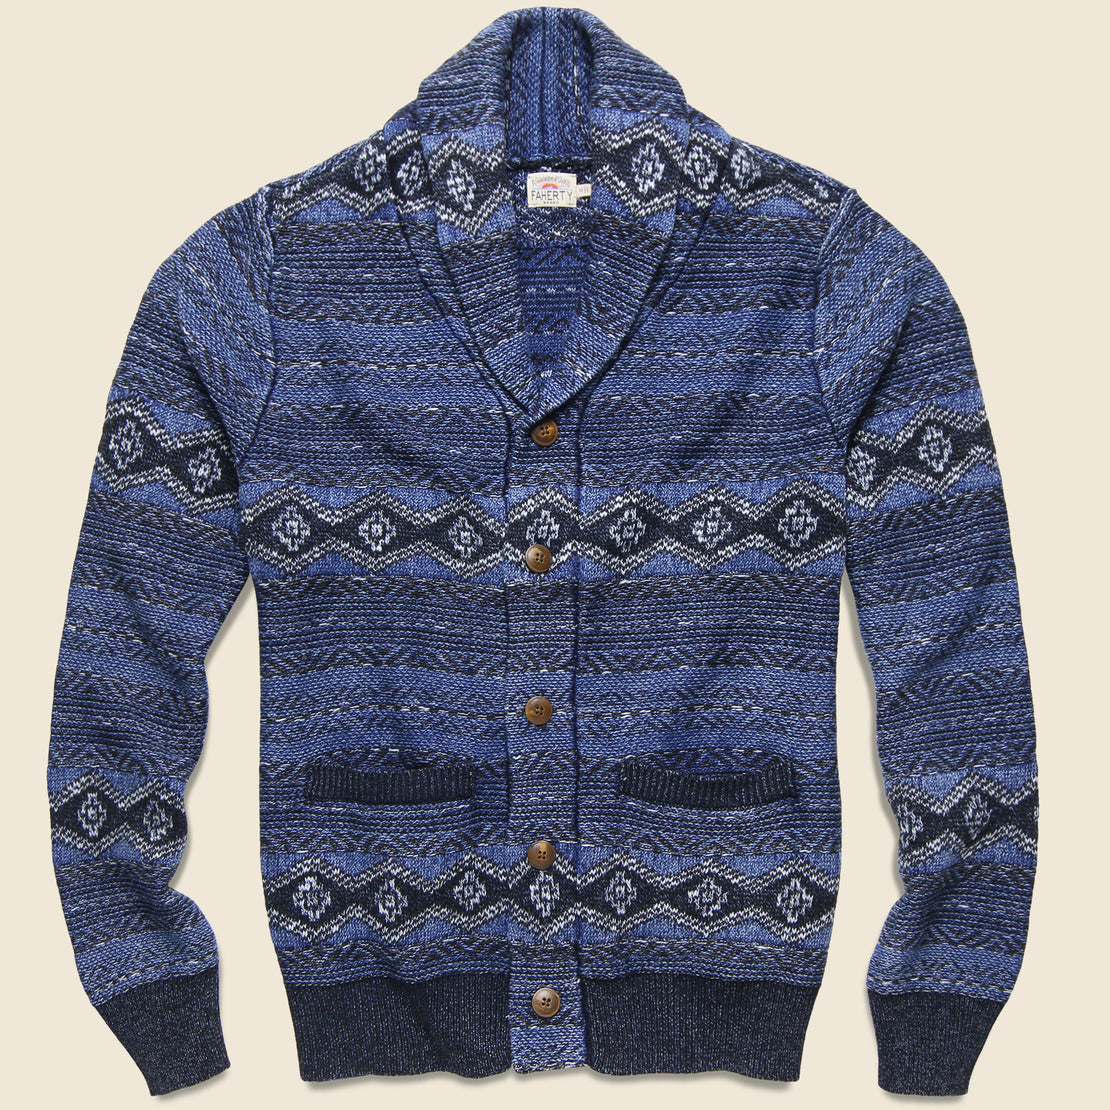 Faherty Indigo Shore Cardigan - Mixed Indigo